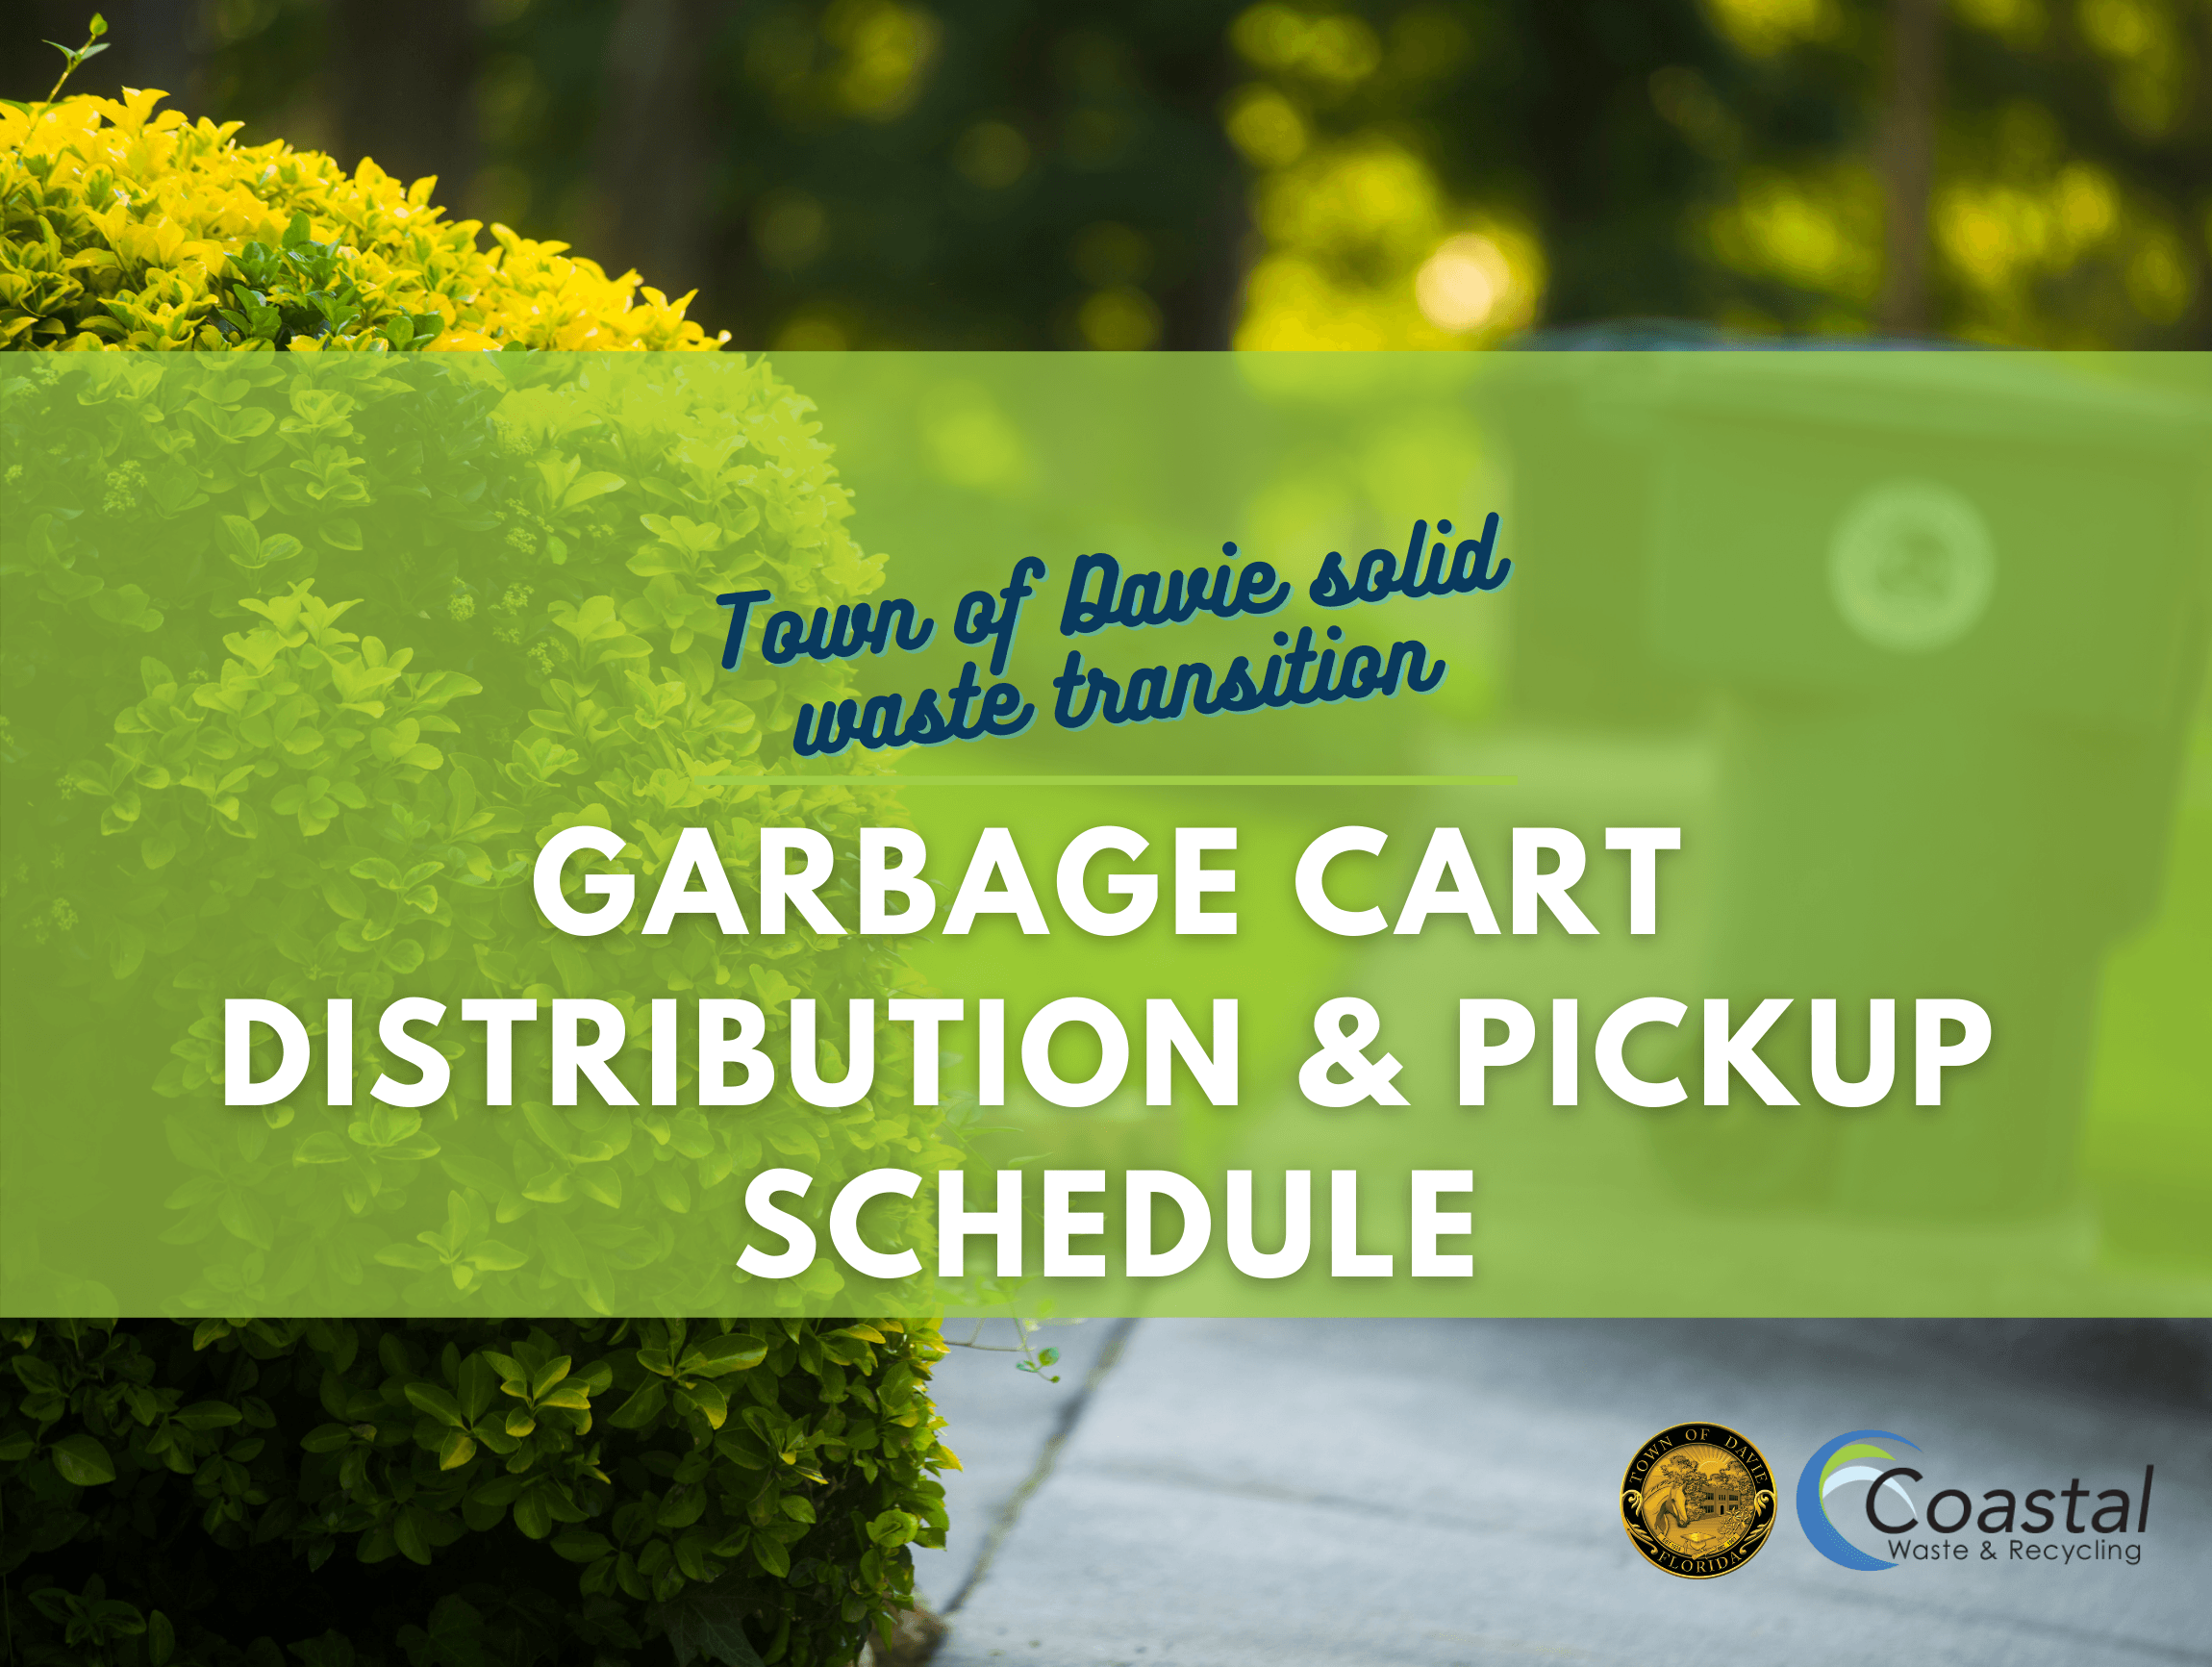 Town of Davie Municipal Solid Waste Transition Garbage Cart Distribution Update-3